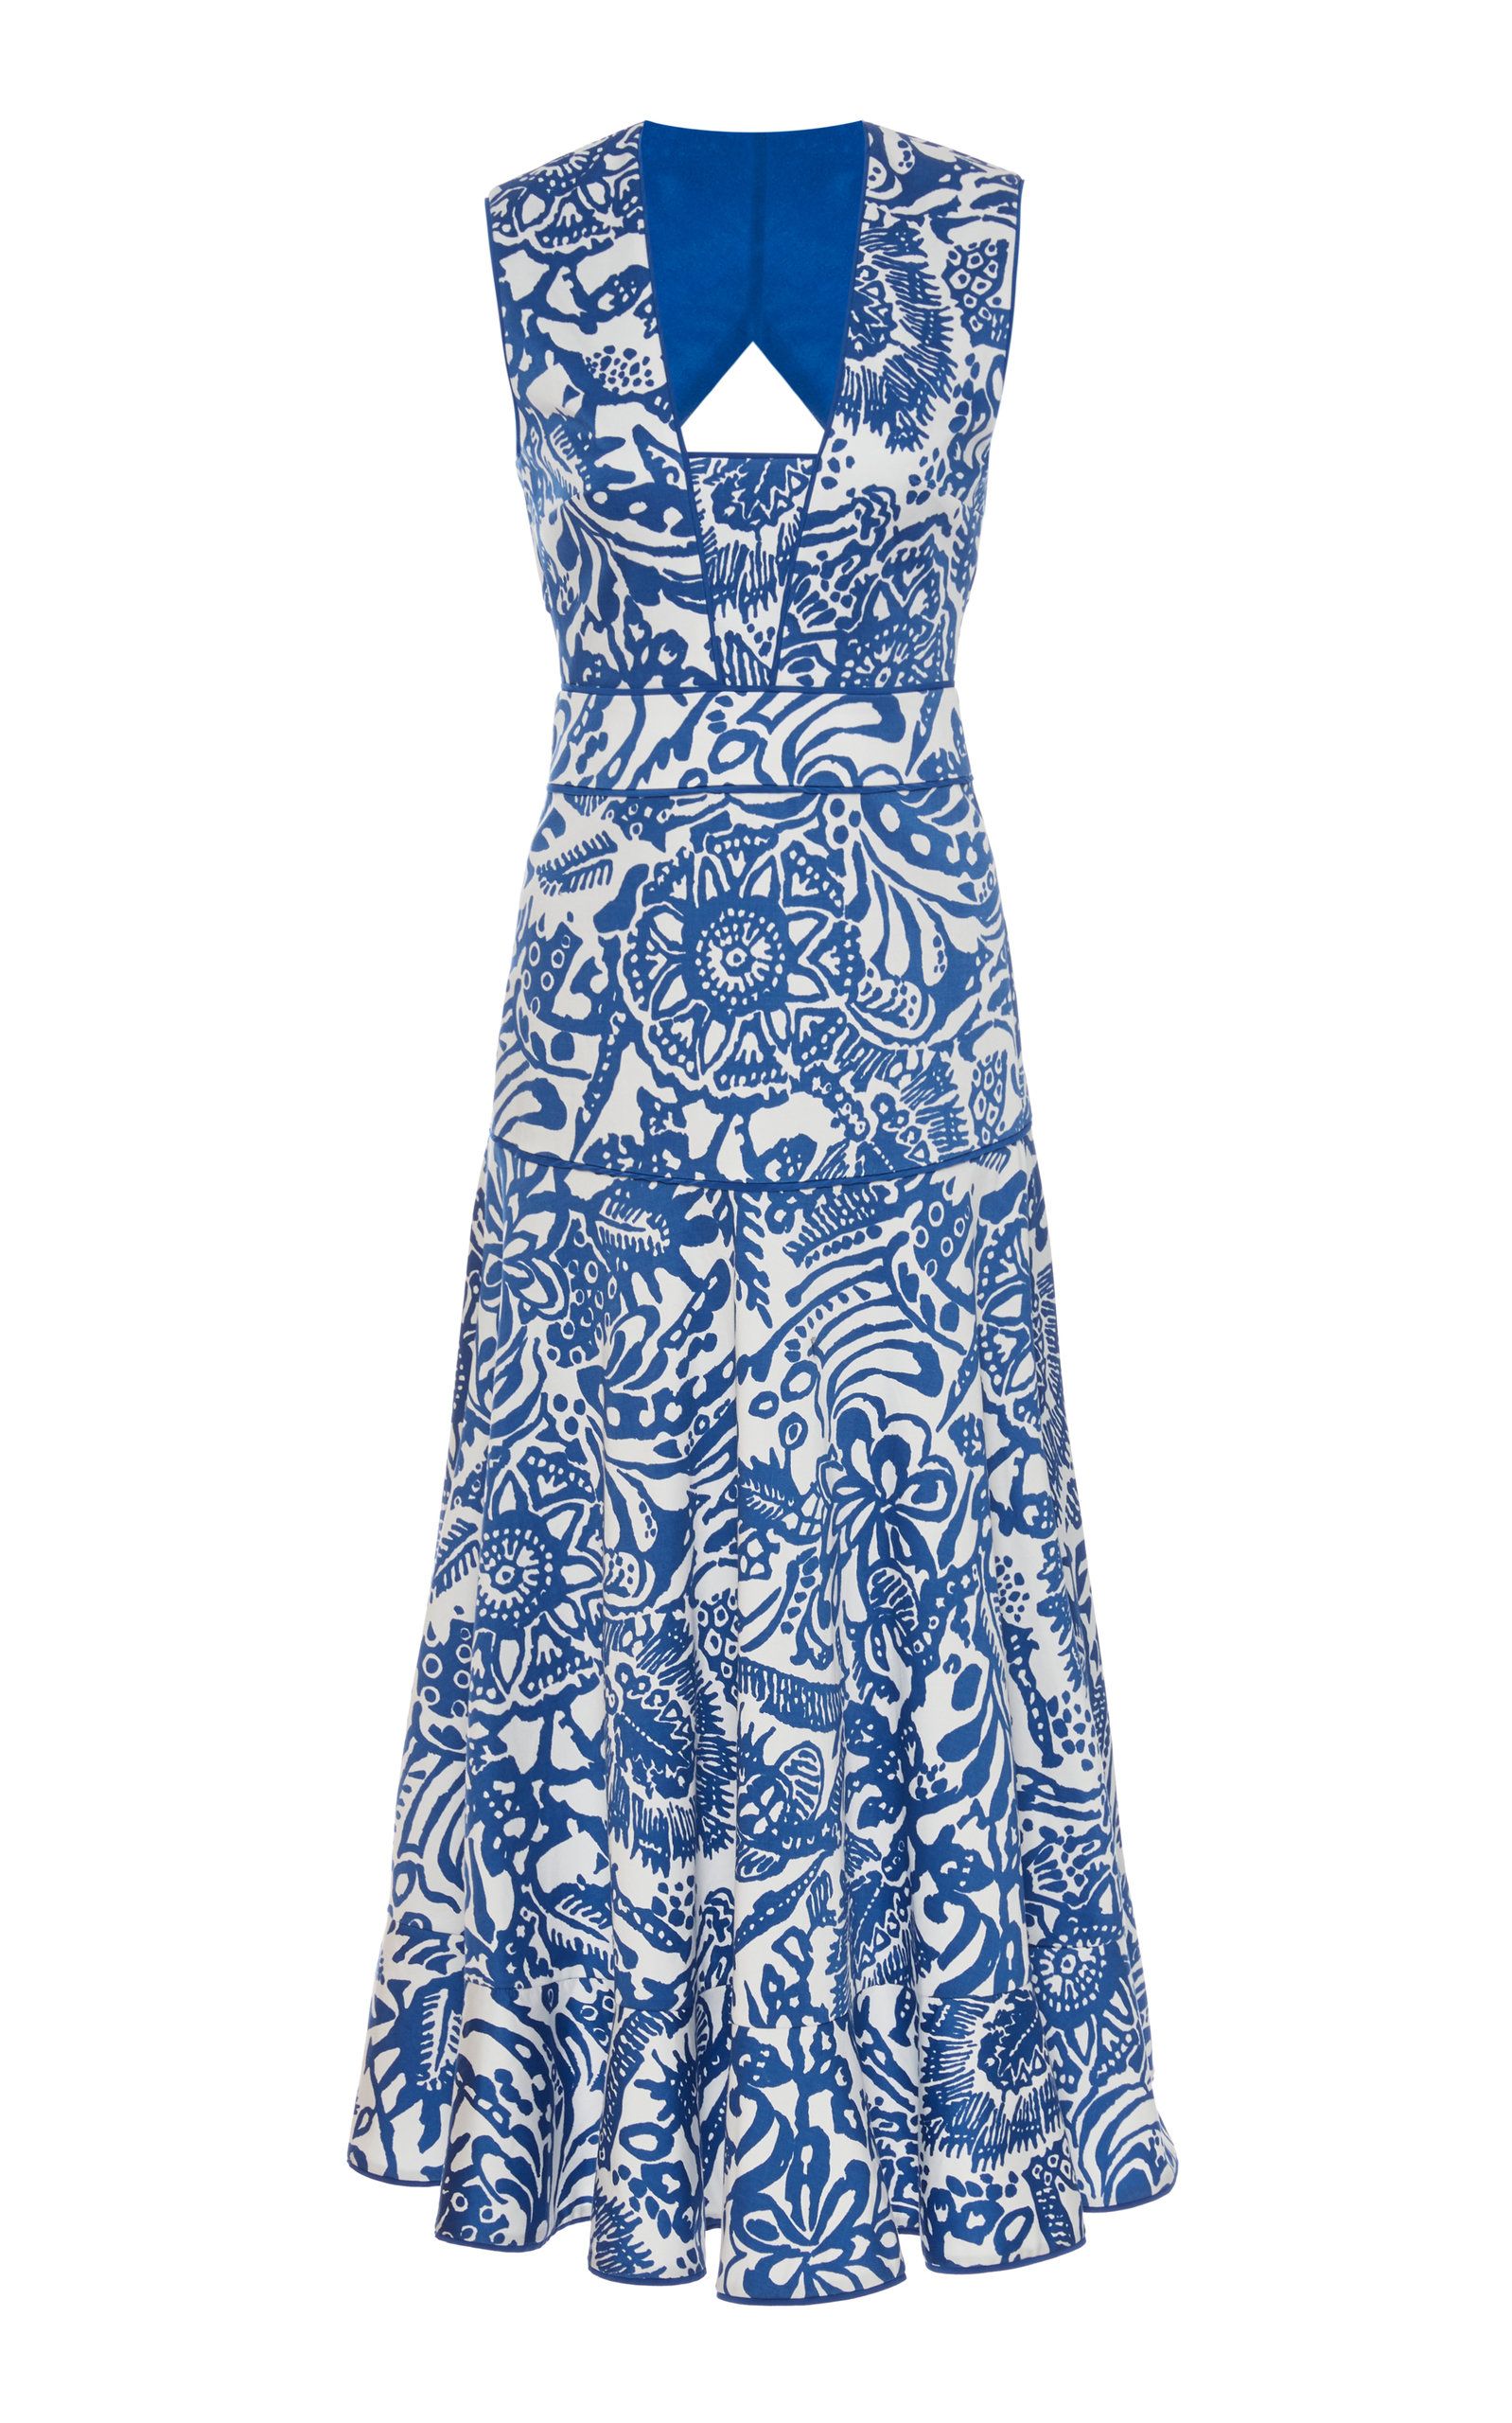 Alexis Women's Marianna Print Dress In Blue,brown